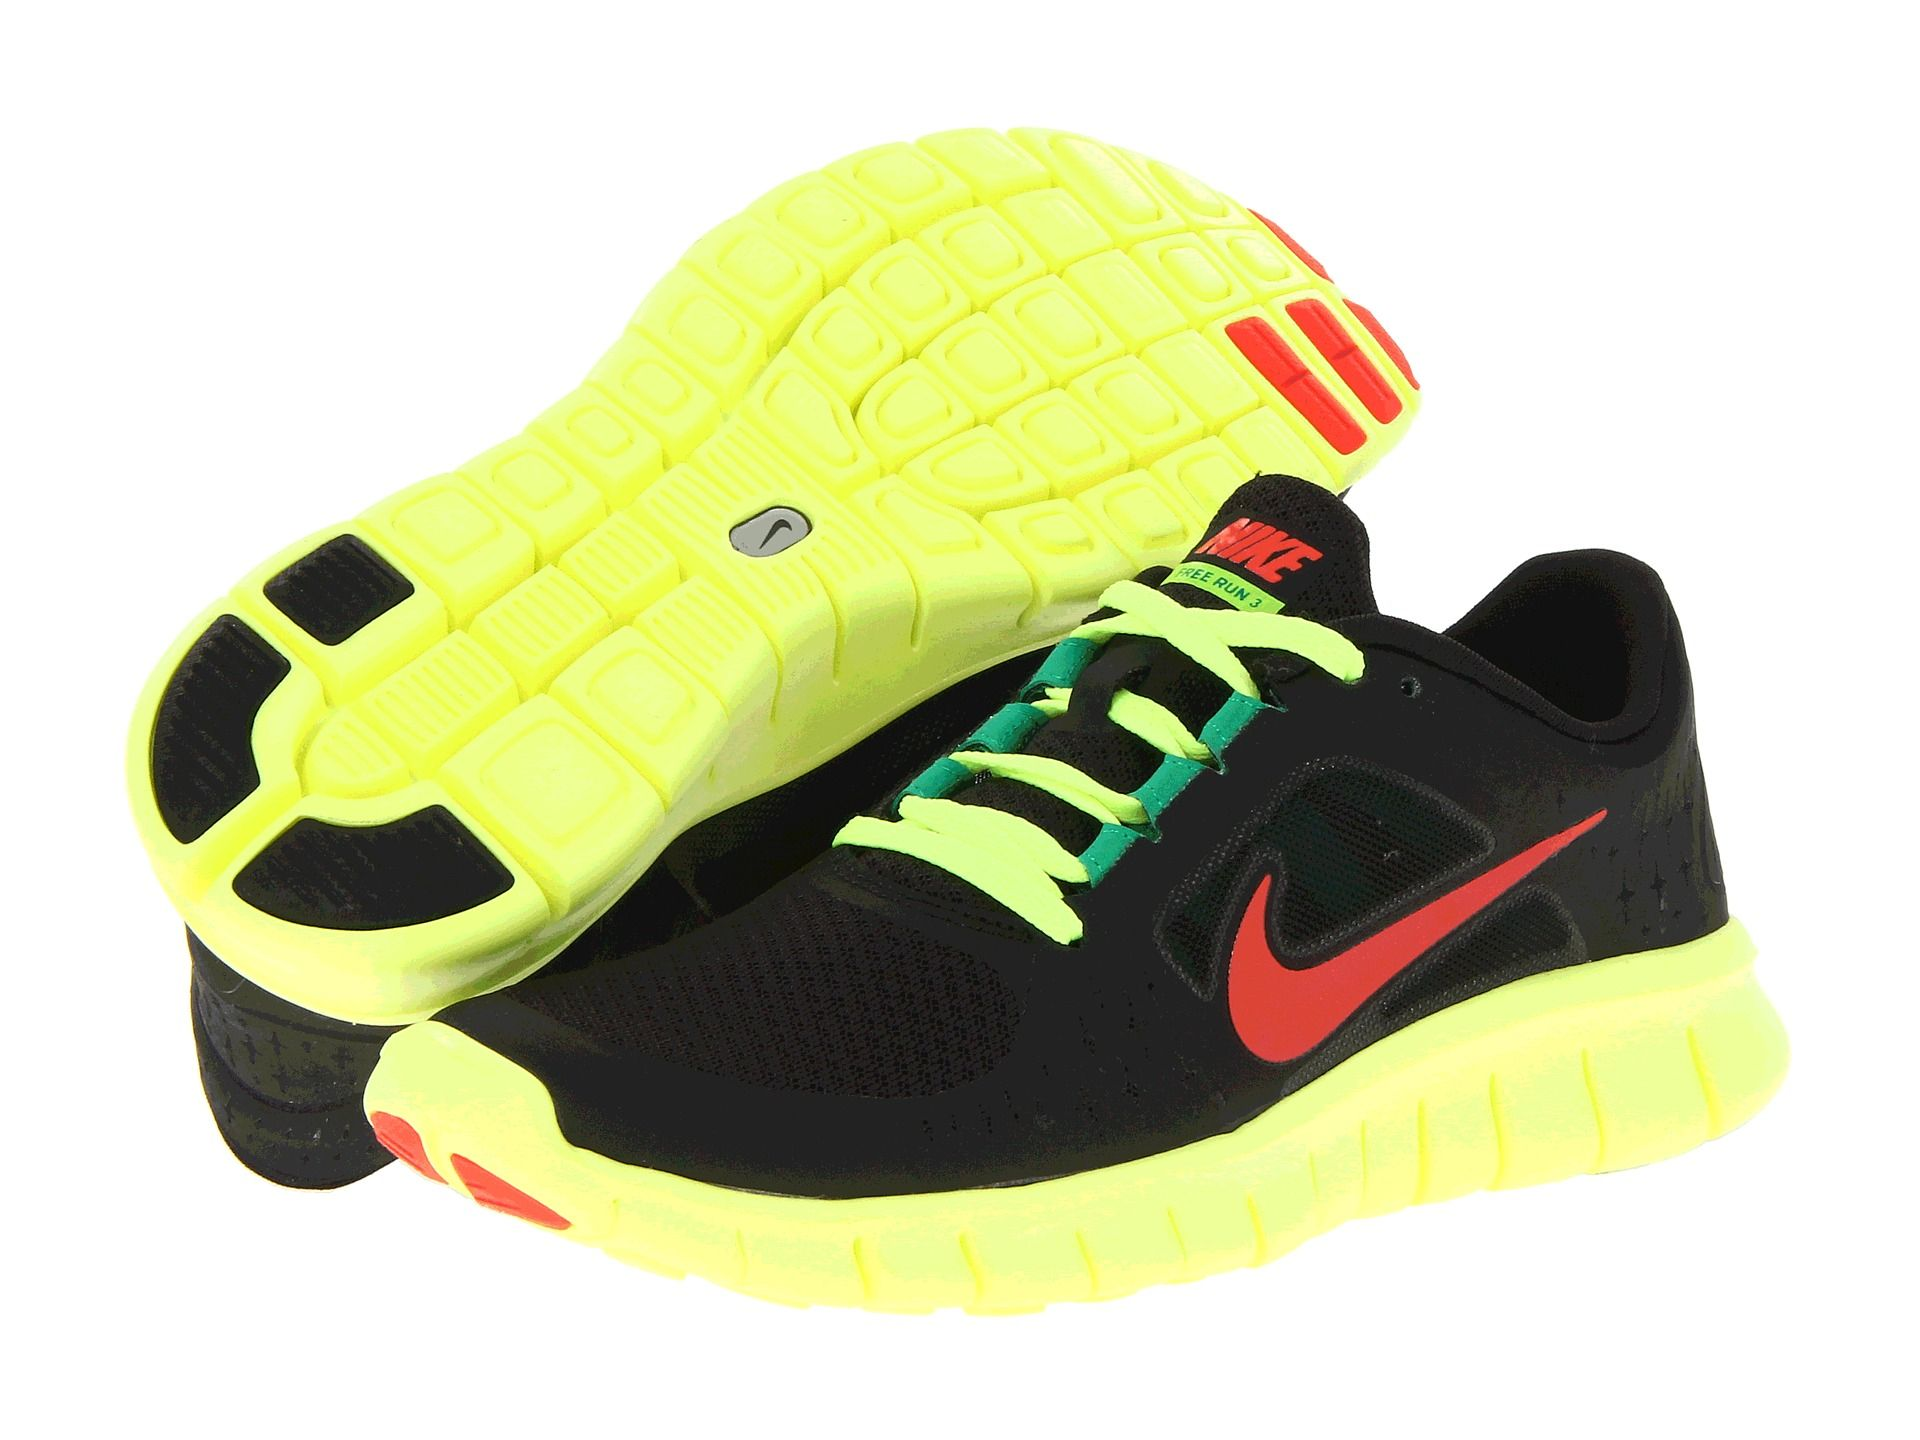 best sneakers 48f0d 1d815 Nike Kids Free Run 3 (Youth) Black Volt Stadium Green Bright Crimson -  Zappos.com Free Shipping BOTH Ways